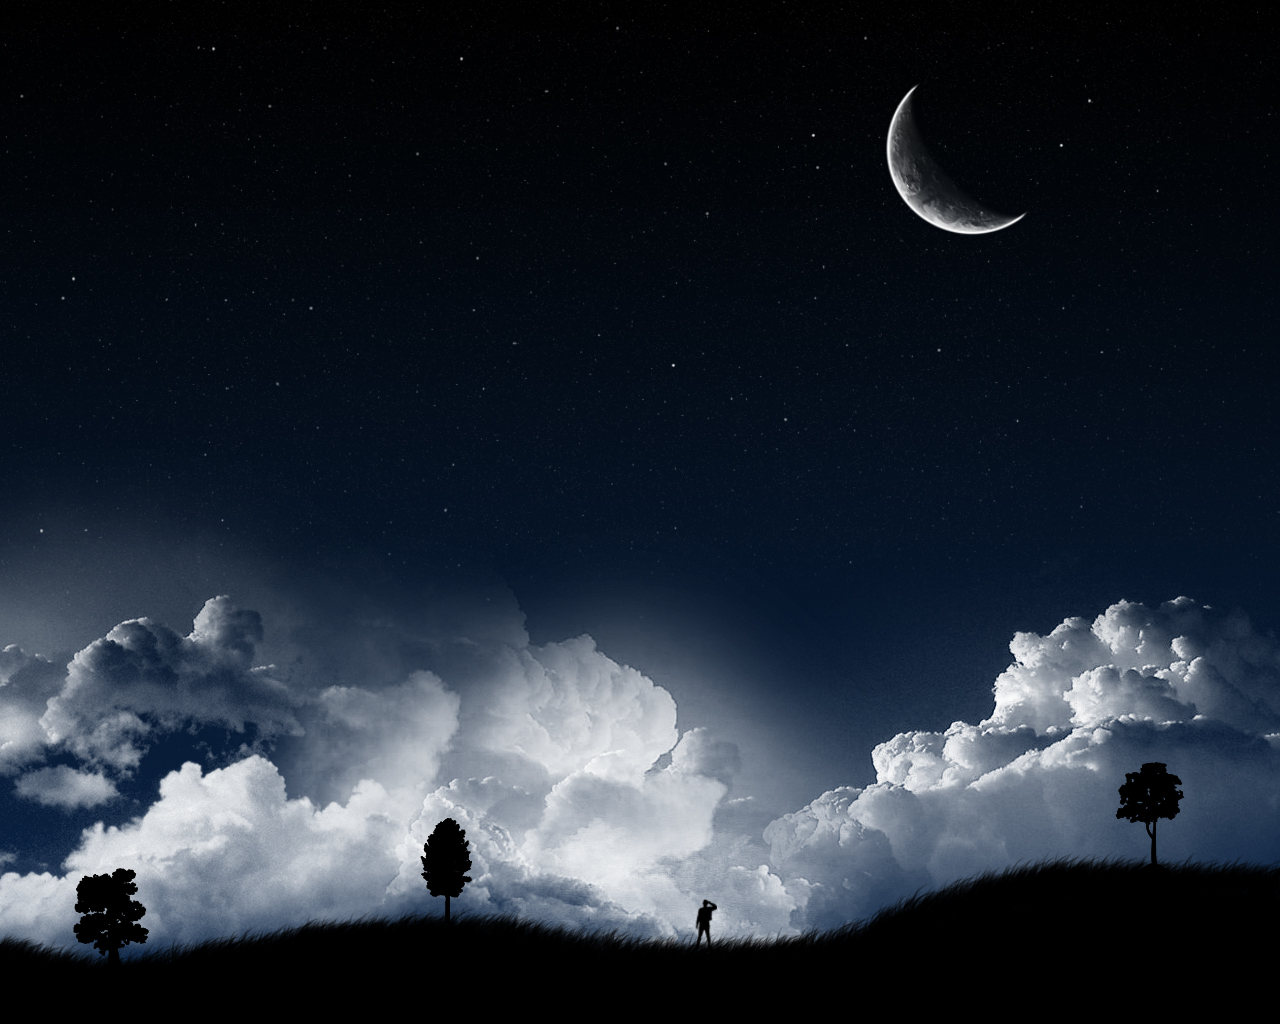 Night Wallpaper: Night HD Wallpaper 1